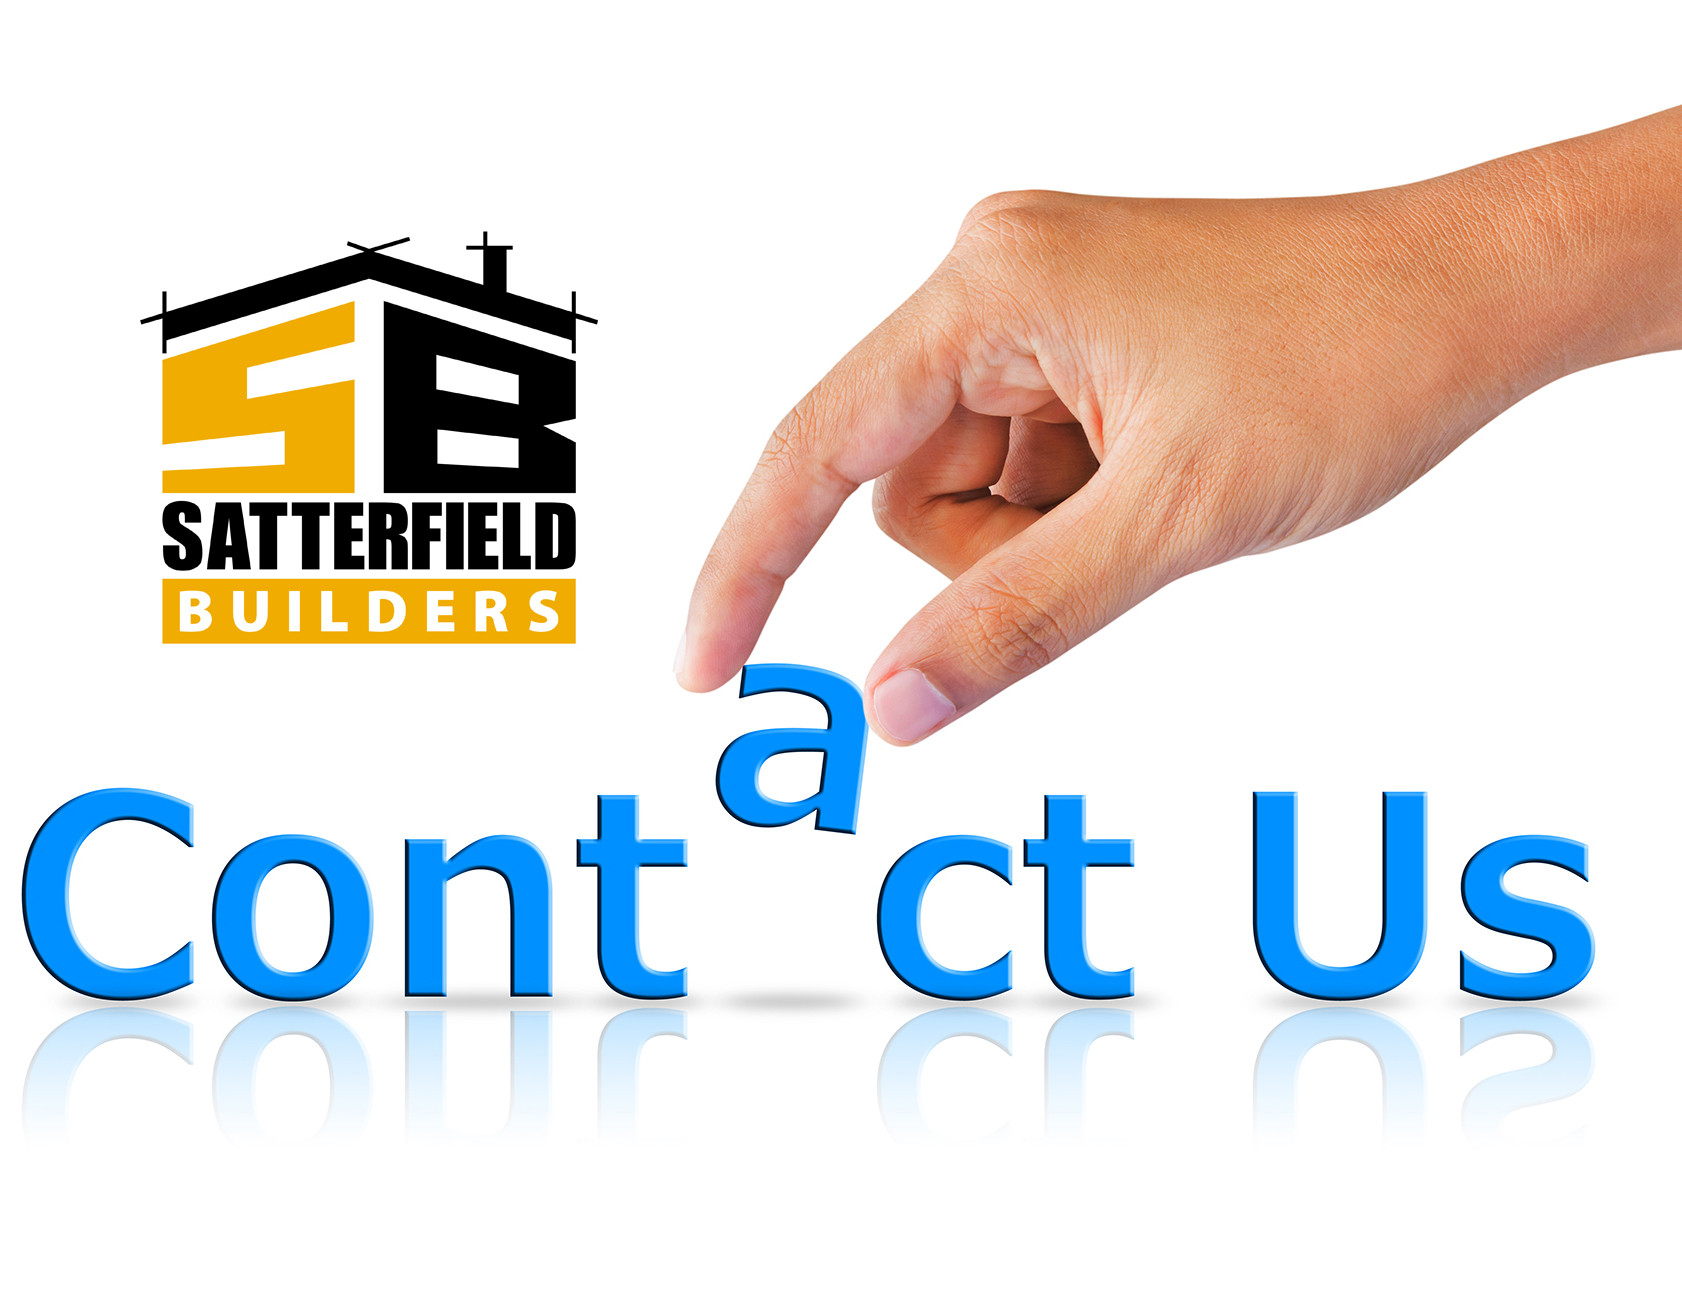 Contact Satterfield